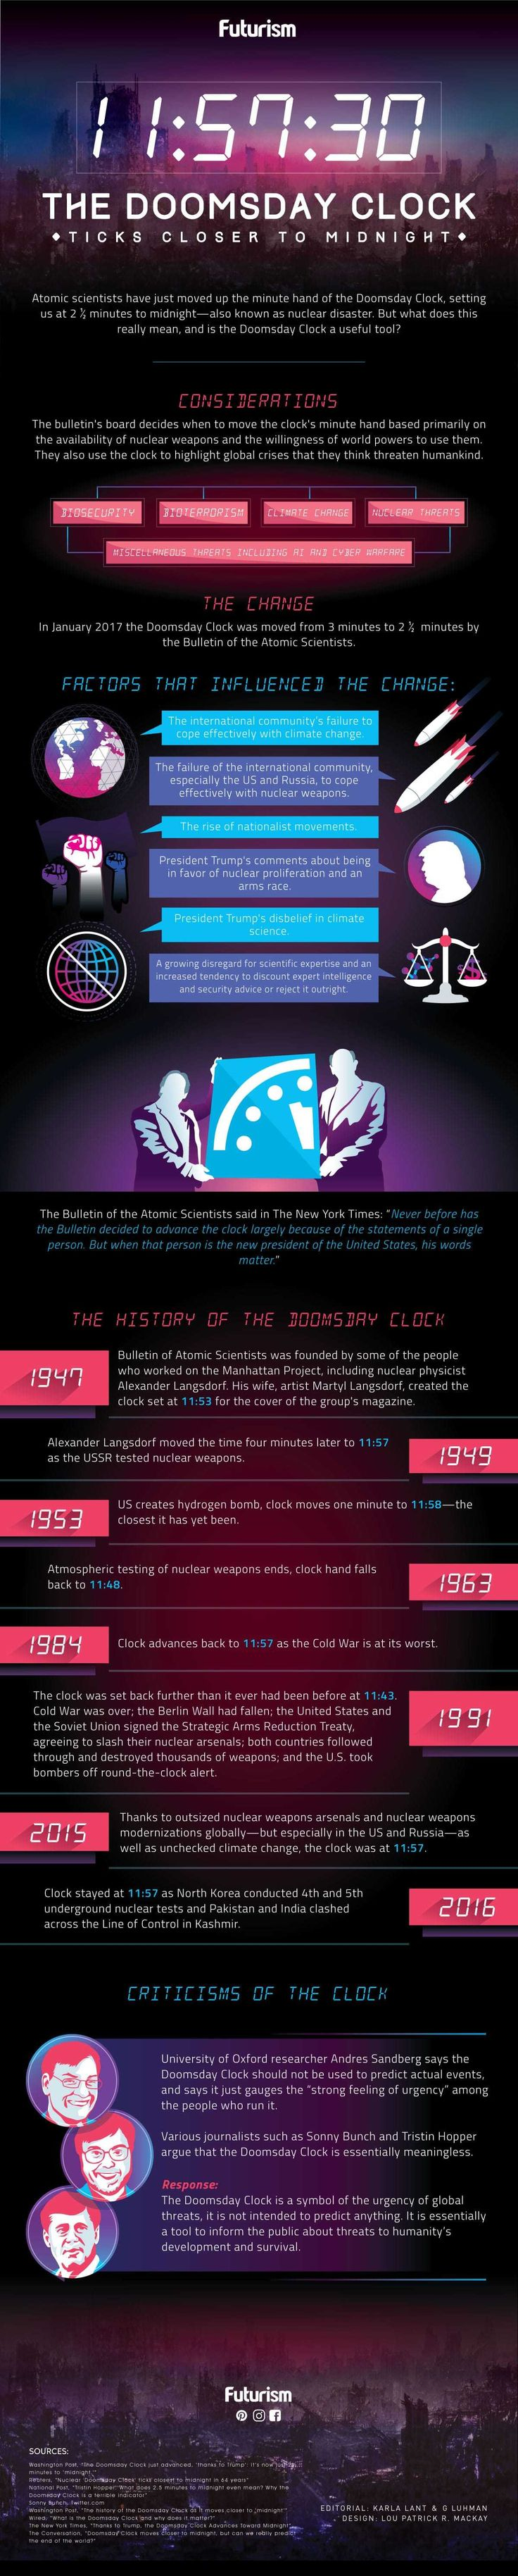 The Doomsday Clock Ticks Closer to Midnight  The Doomsday Clock is now at 2 ½ minutes to midnight, or nuclear disaster. But what does this really mean, and is the Doomsday Clock a useful tool?